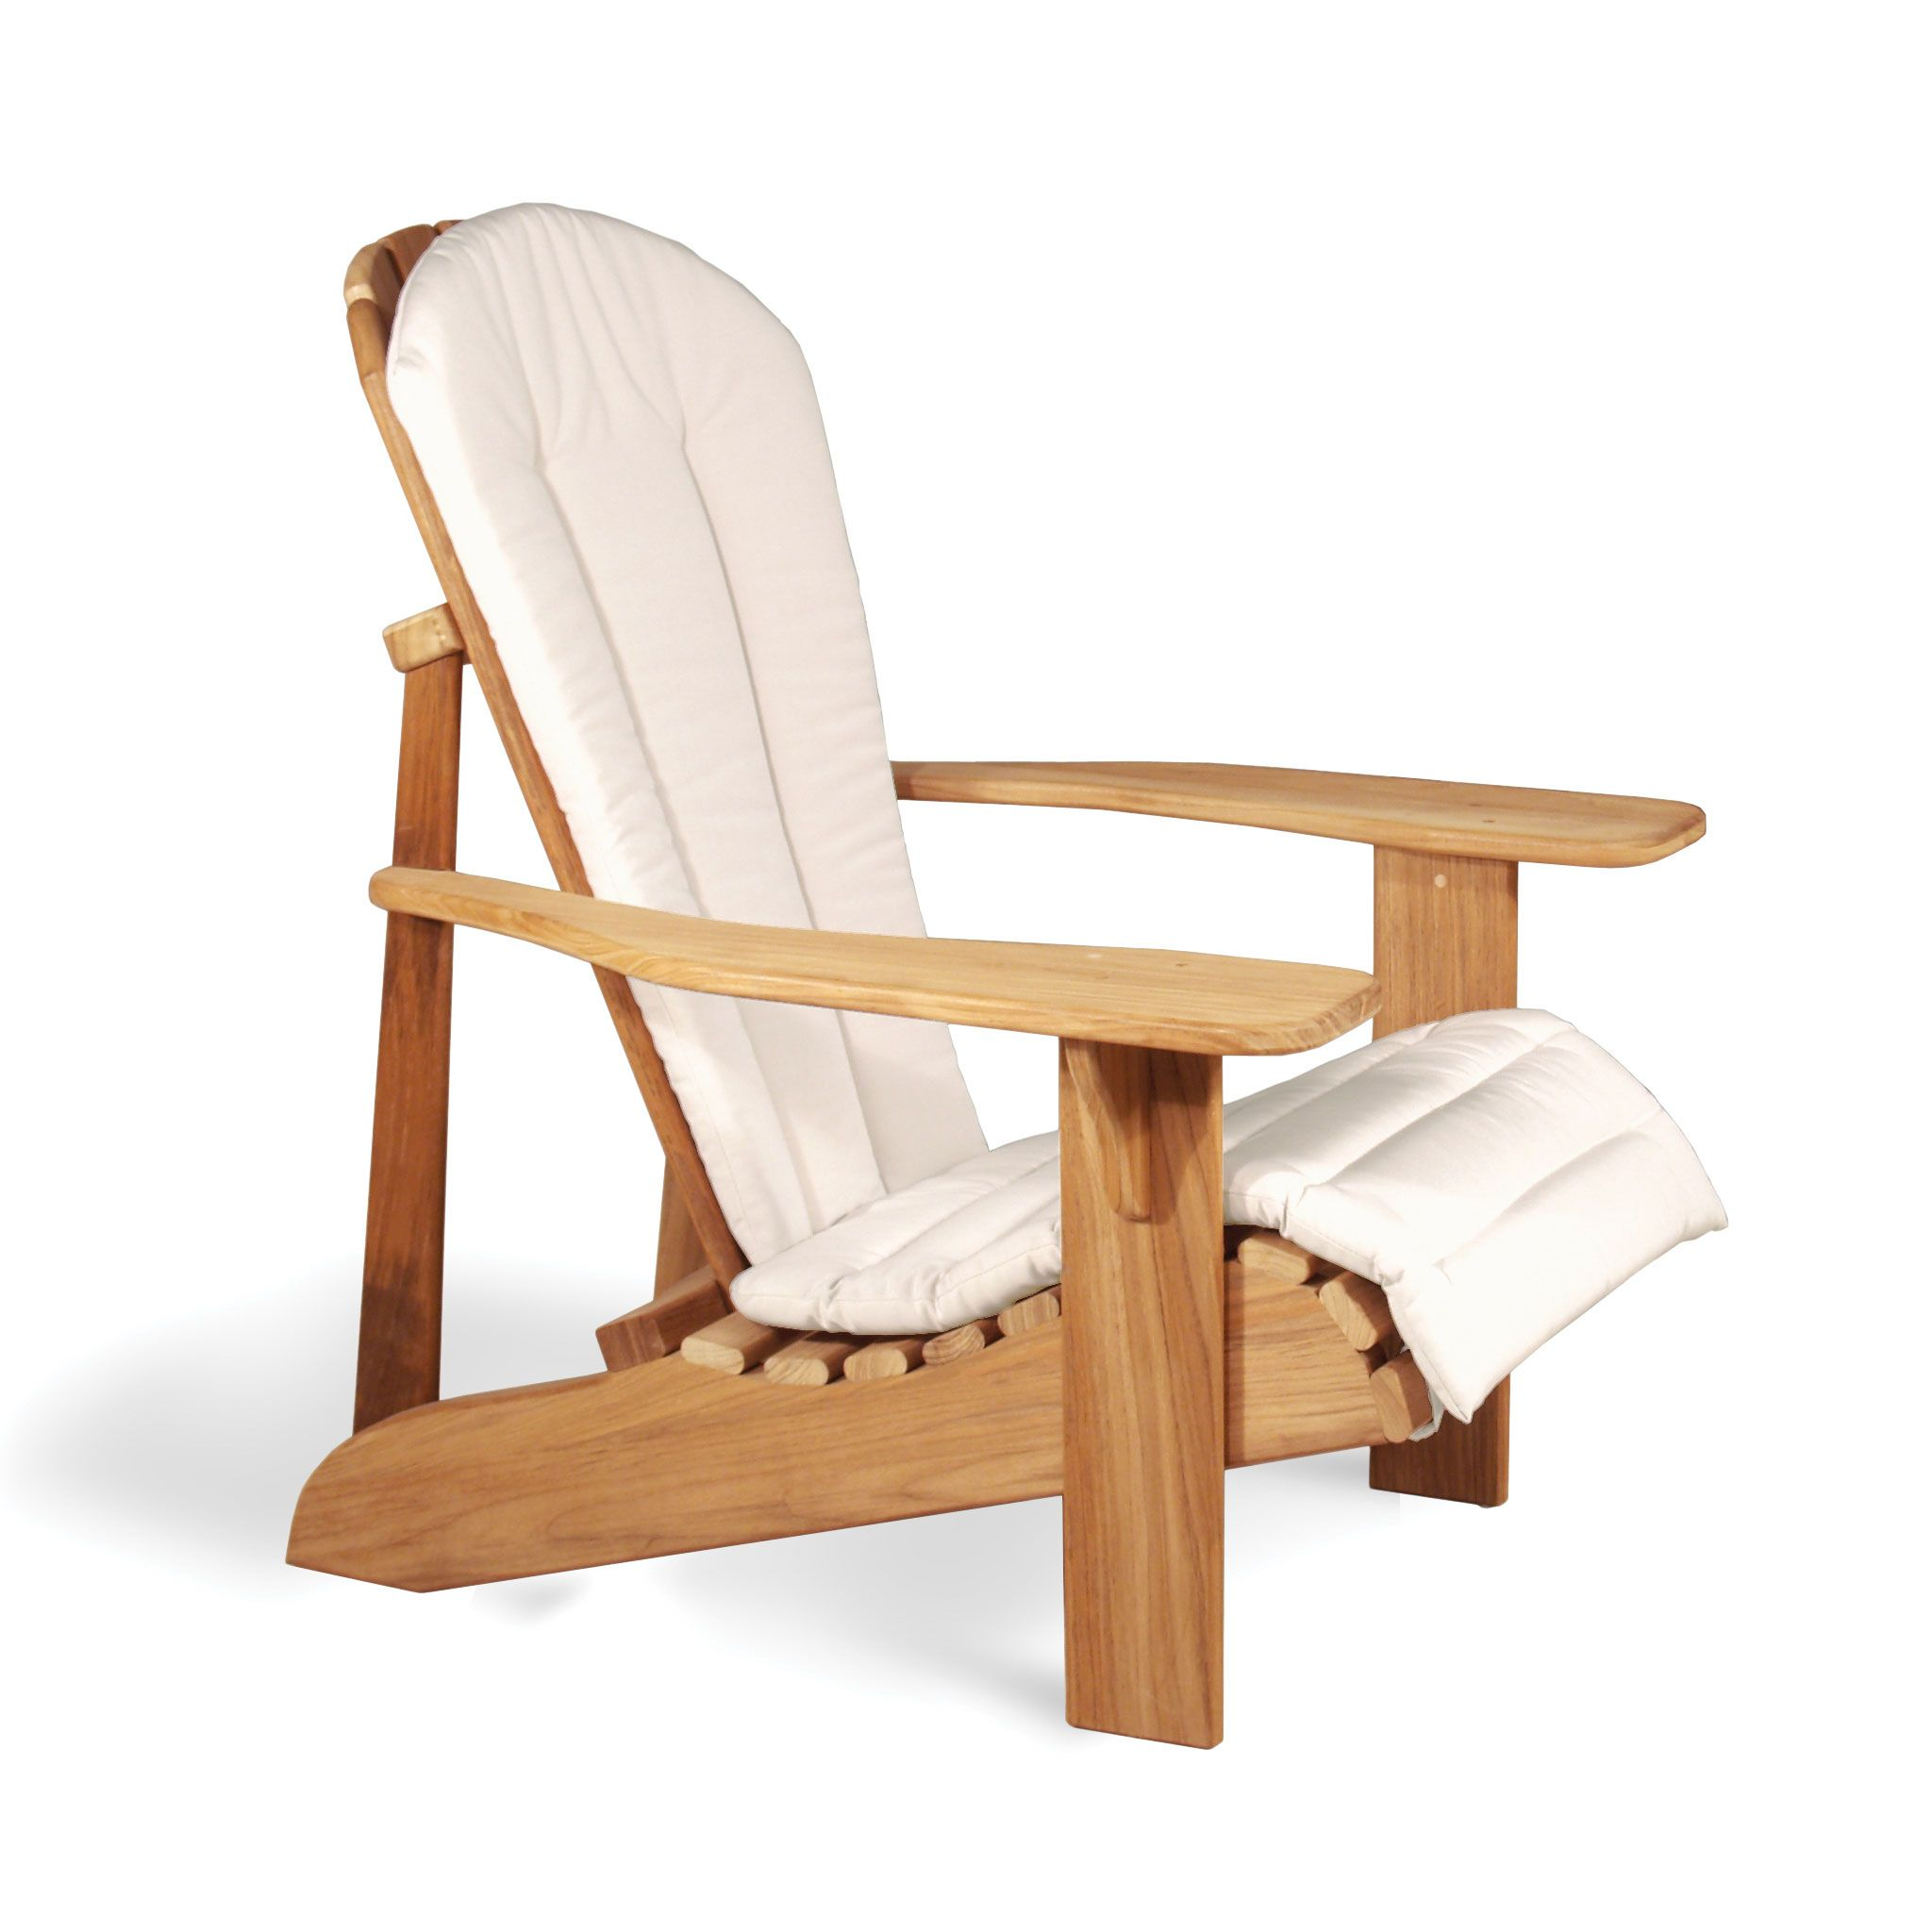 Assorted Cushions For Adirondack Chairs With Type And Charming